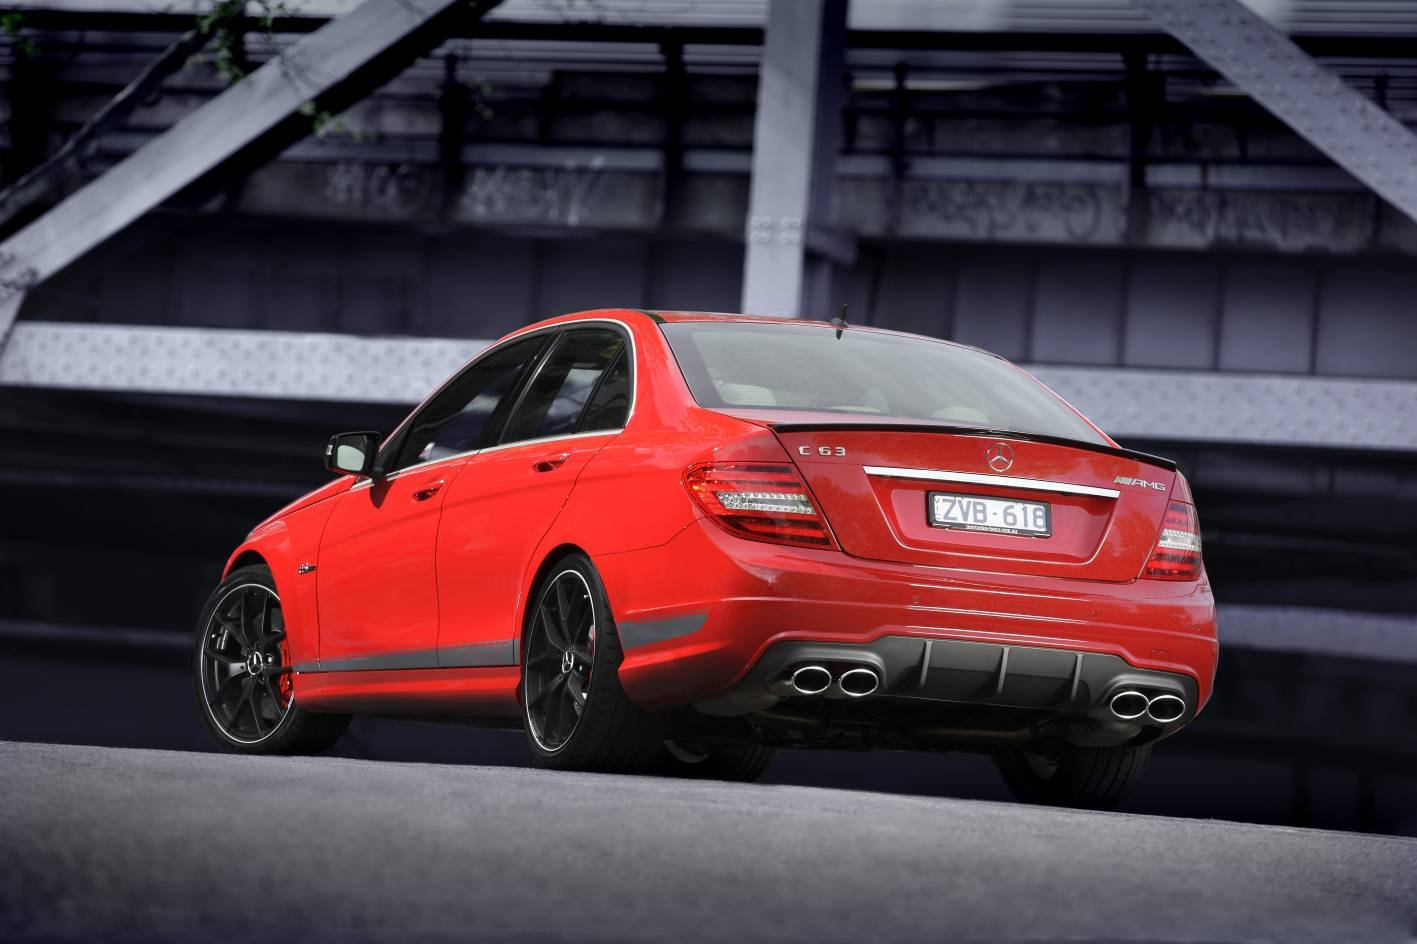 Mercedes Benz C63 Amg Edition 507 Review Photos Caradvice